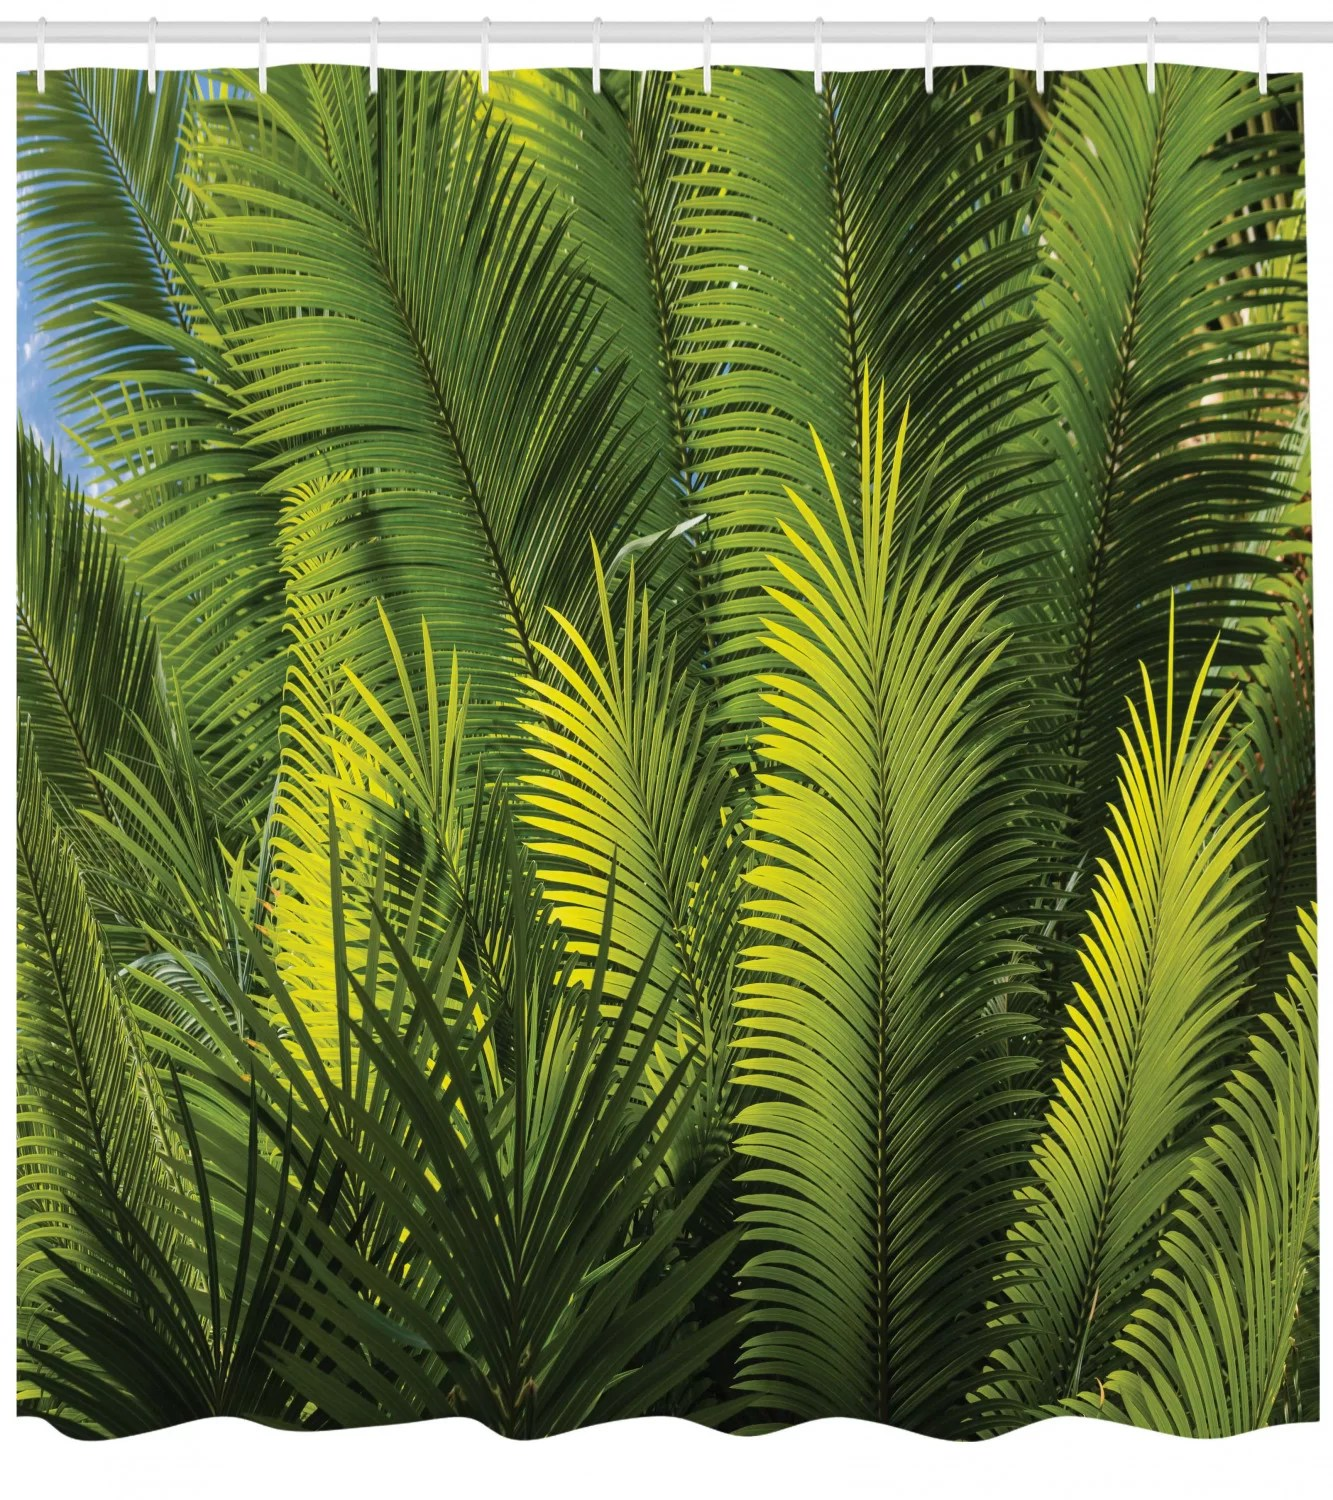 palm tree foliage tropical plant leaves forest exotic natural beauty image shower curtain set